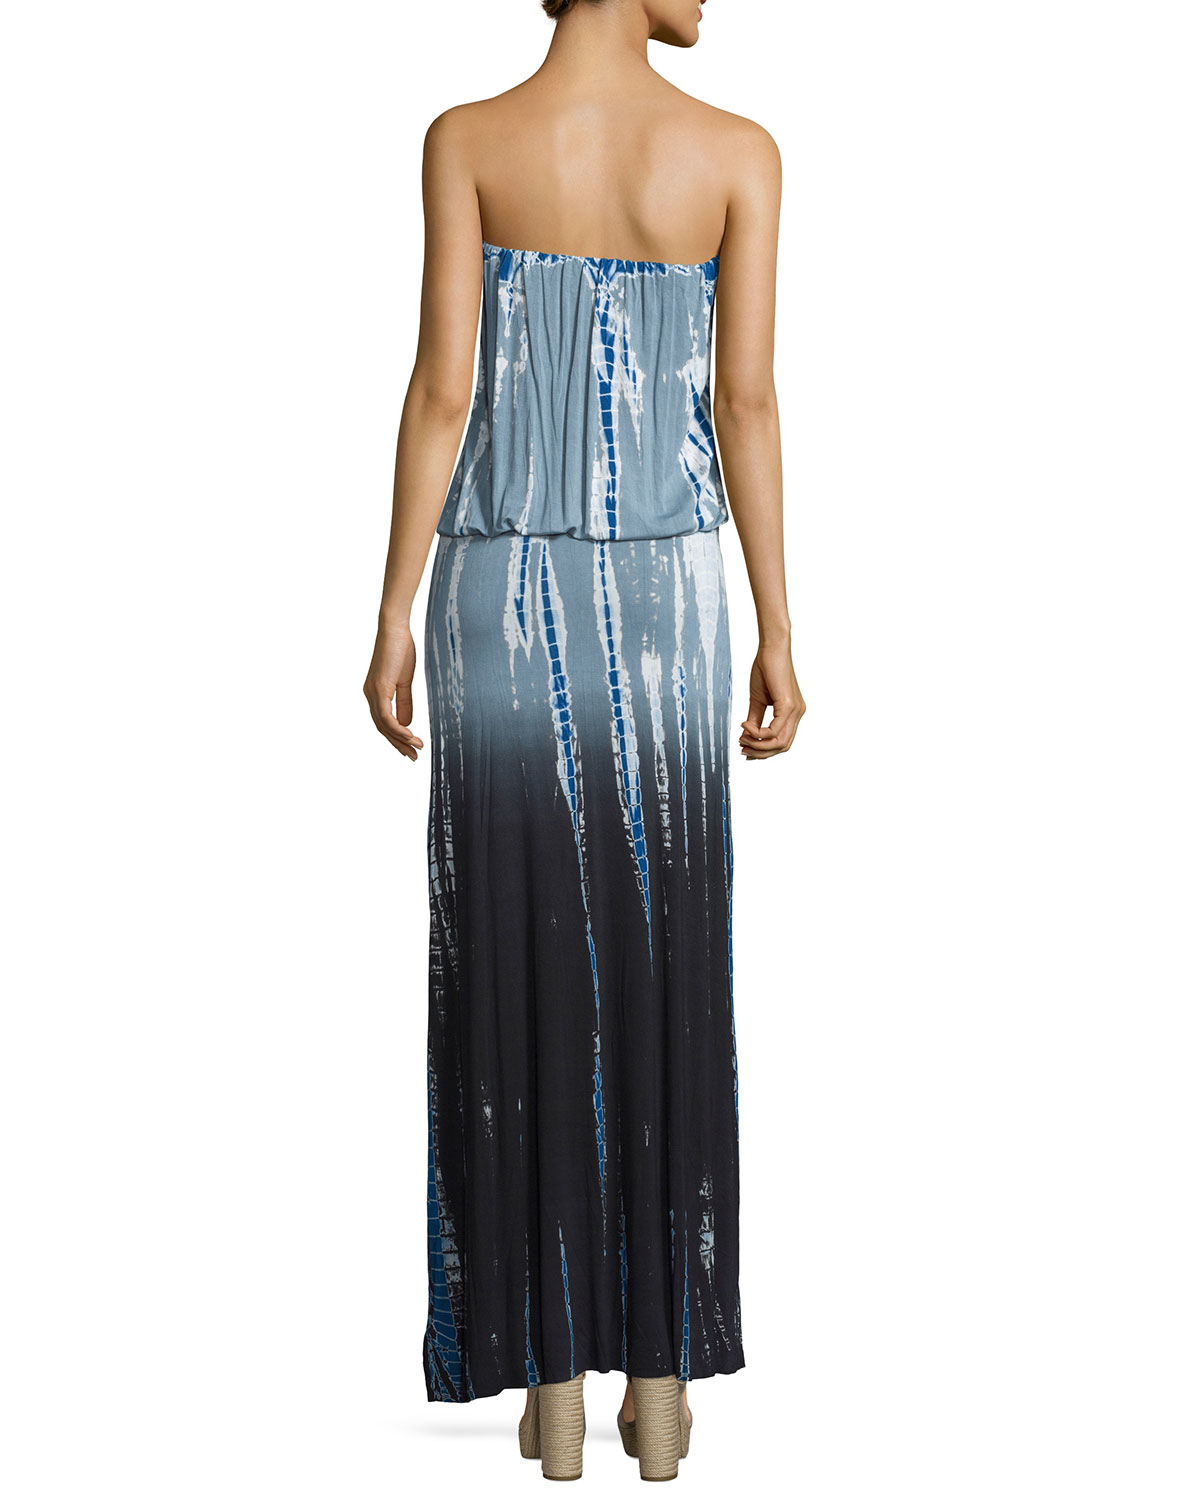 Young fabulous & broke Sydney Strapless Ombre Tie-dye Maxi ...